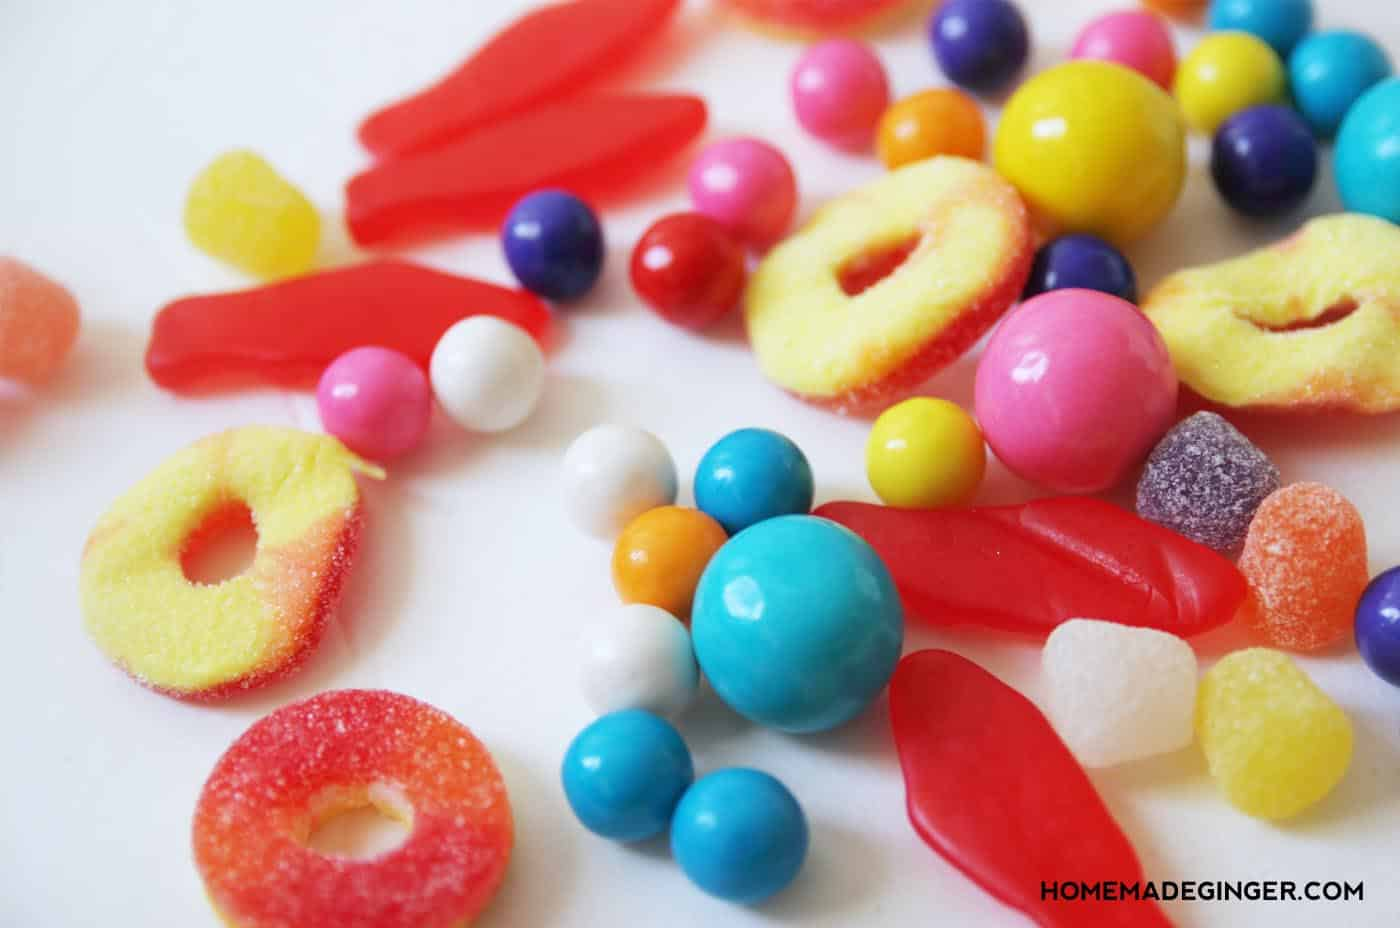 Mix up your holiday decor by making some DIY candy garlands! This is such a great project for kids to help with!